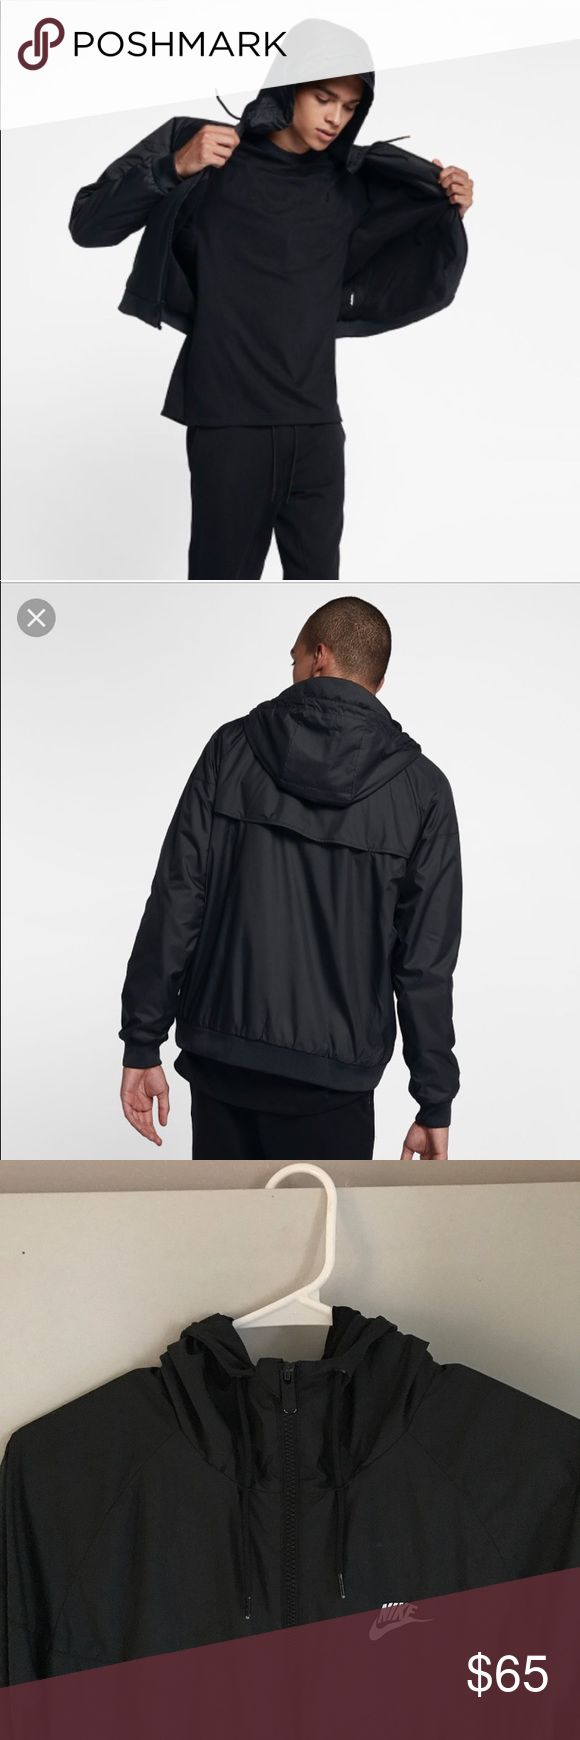 Men's Nike jacket Men Nikes Jacket. Nike Windrunner Jacket. Lightweight. No rips or stains. Just normal wear. Two front zipper pockets. Nike Jackets & Coats Performance Jackets